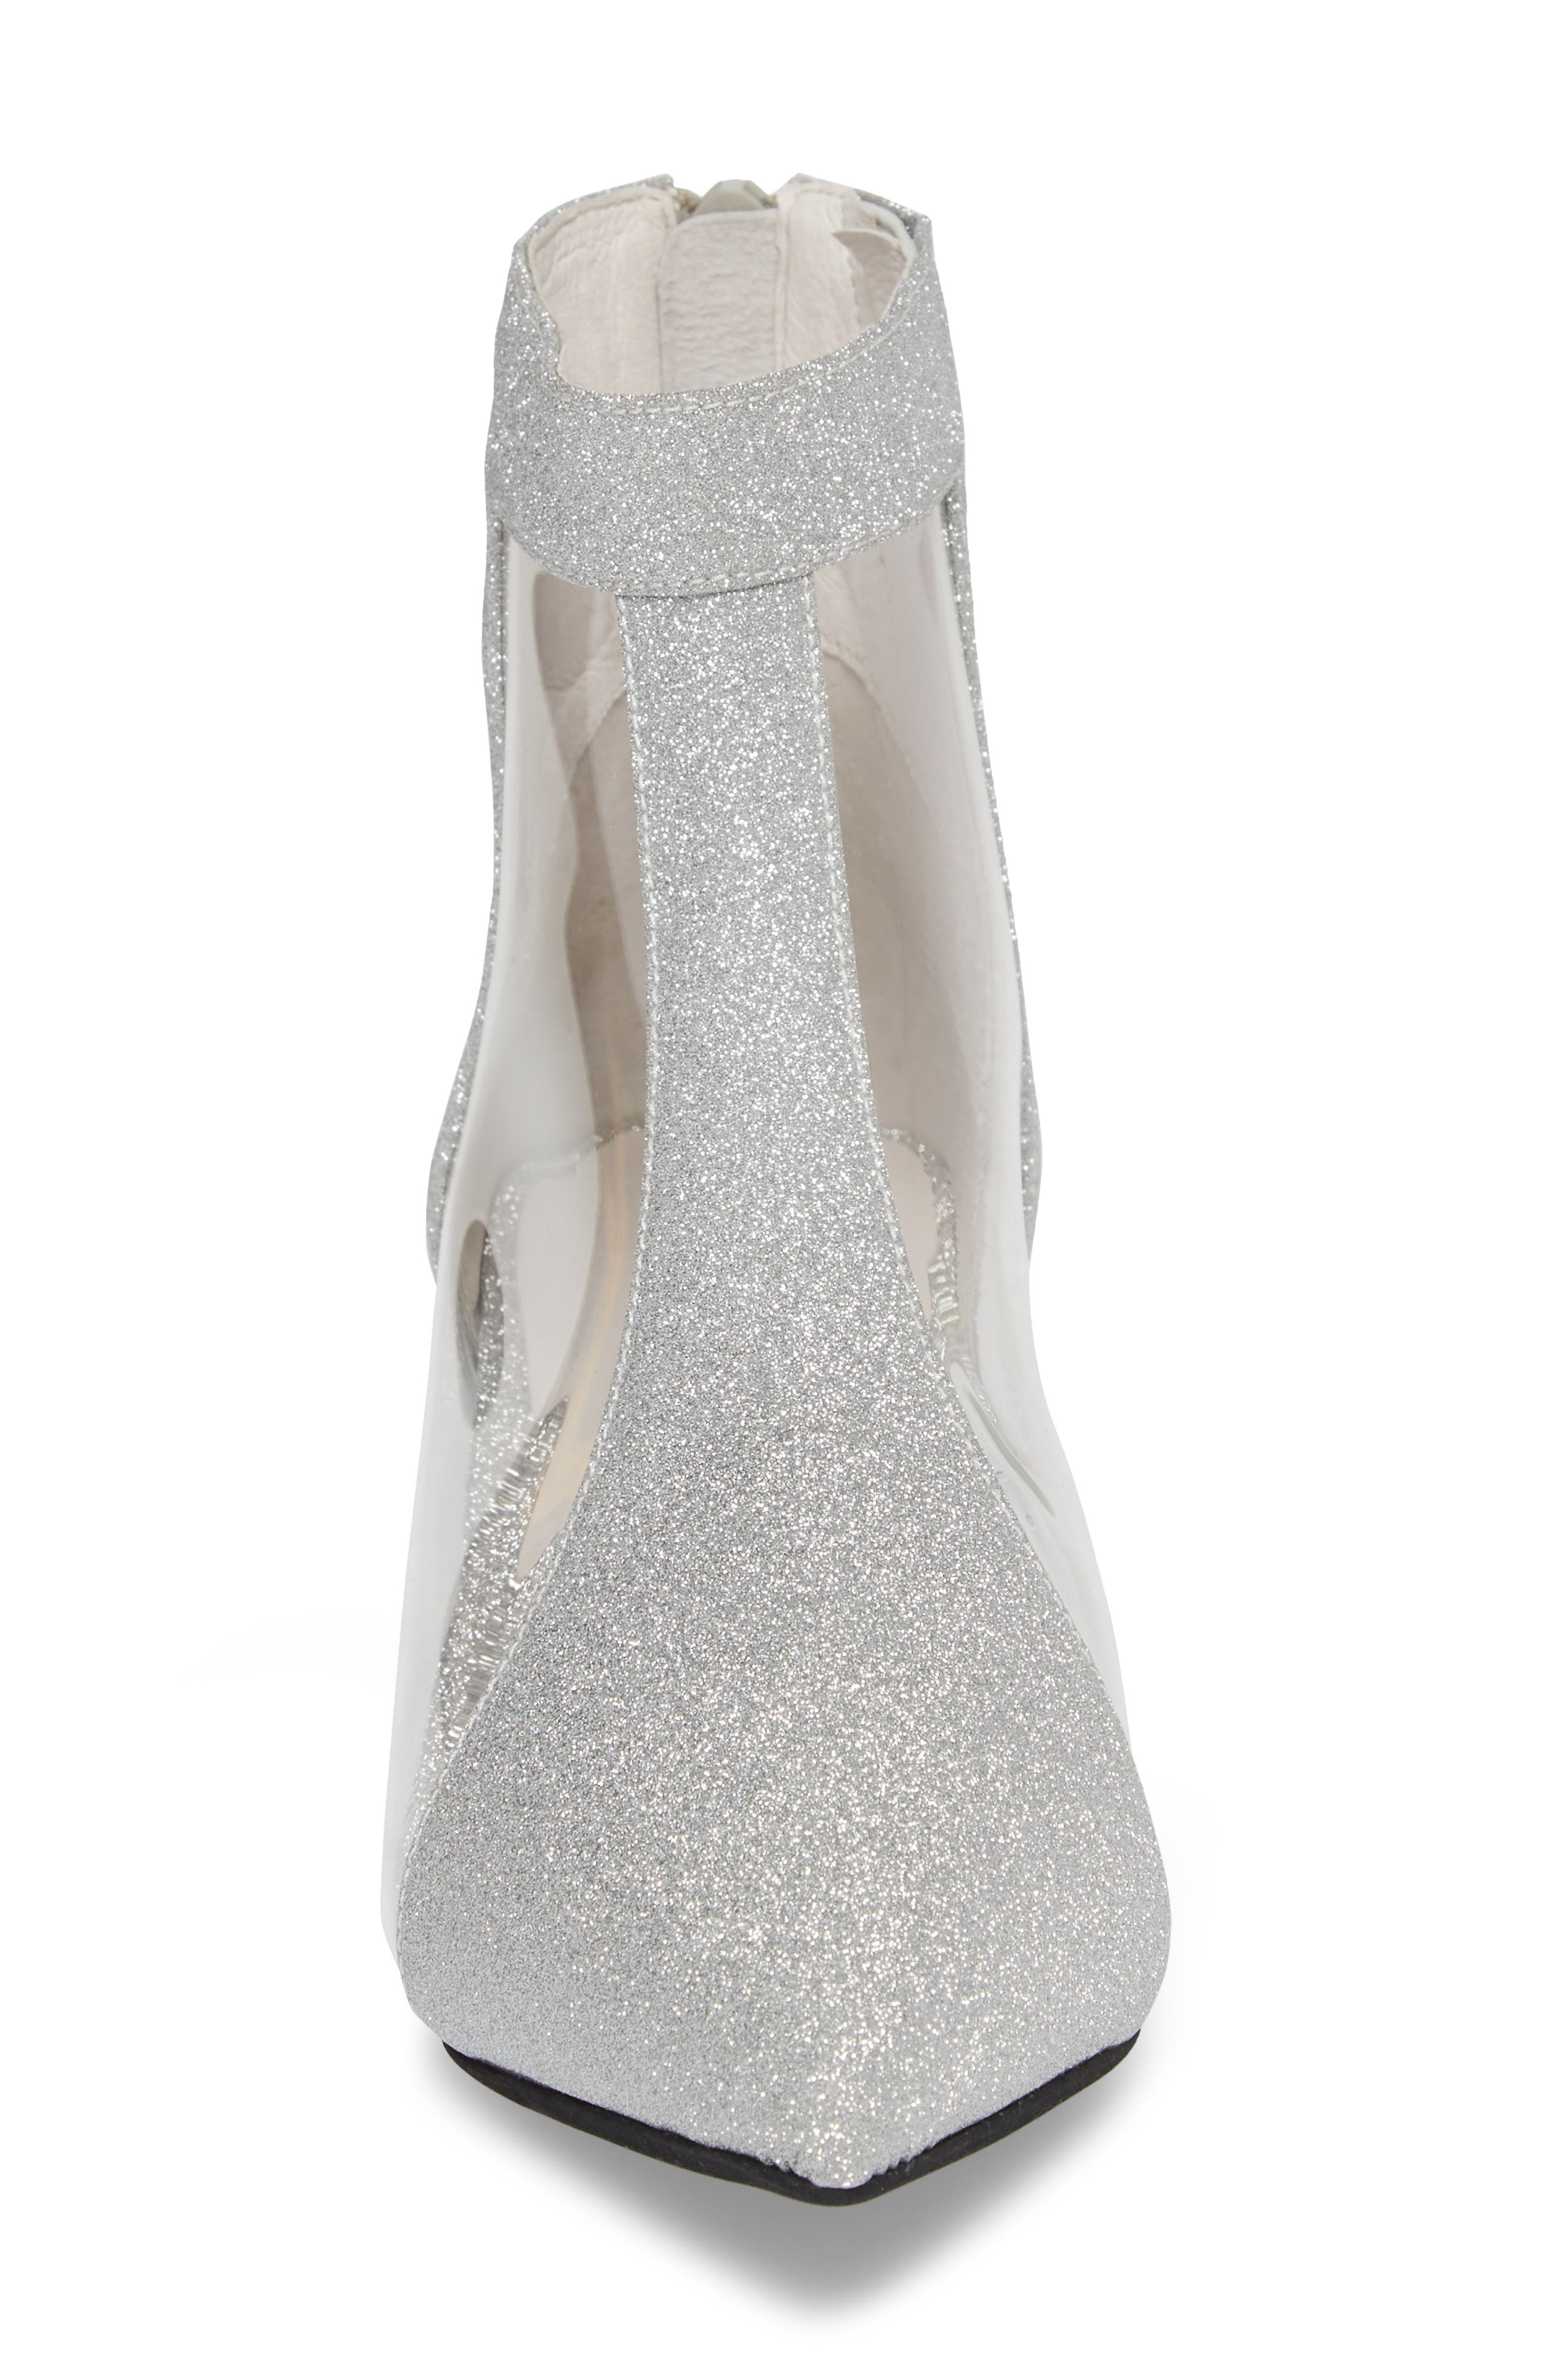 Mistress Bootie,                             Alternate thumbnail 4, color,                             Silver Glitter Leather